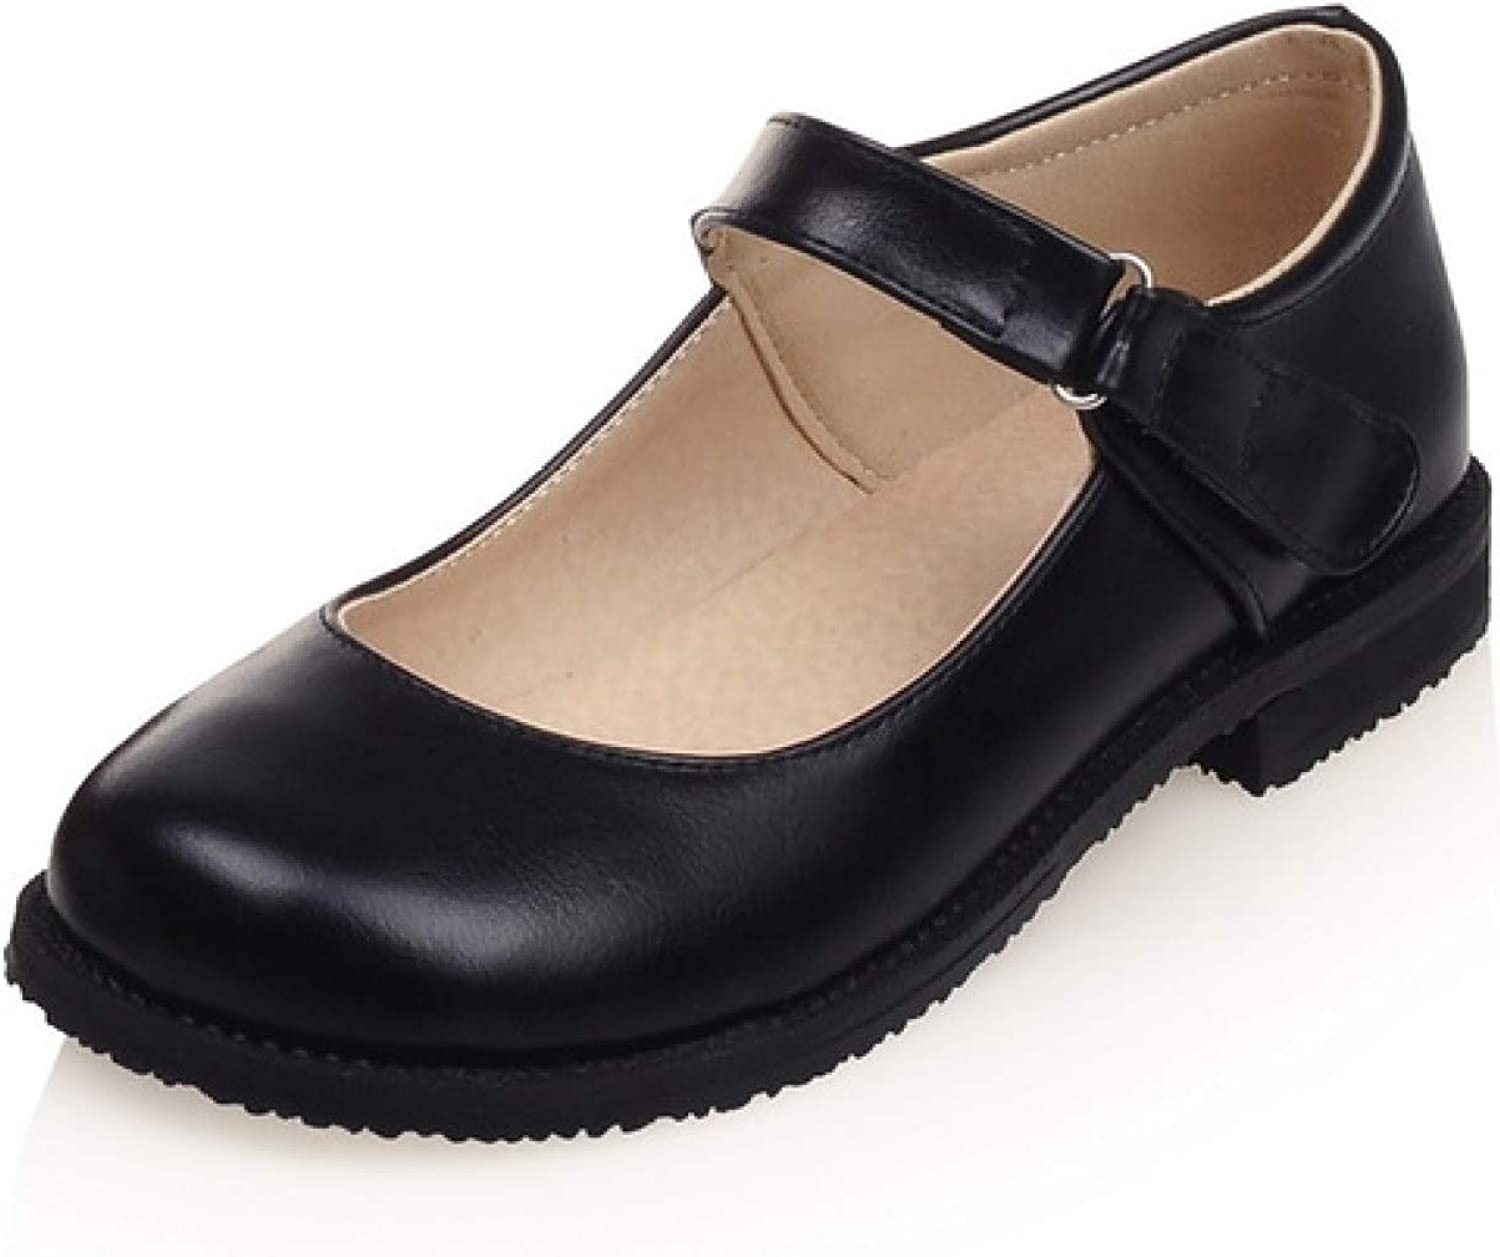 QSCQ Popular brand in the world Women Ballerina Seasonal Wrap Introduction Flats Mary Jane Buckle Shoes Strap H Ladies